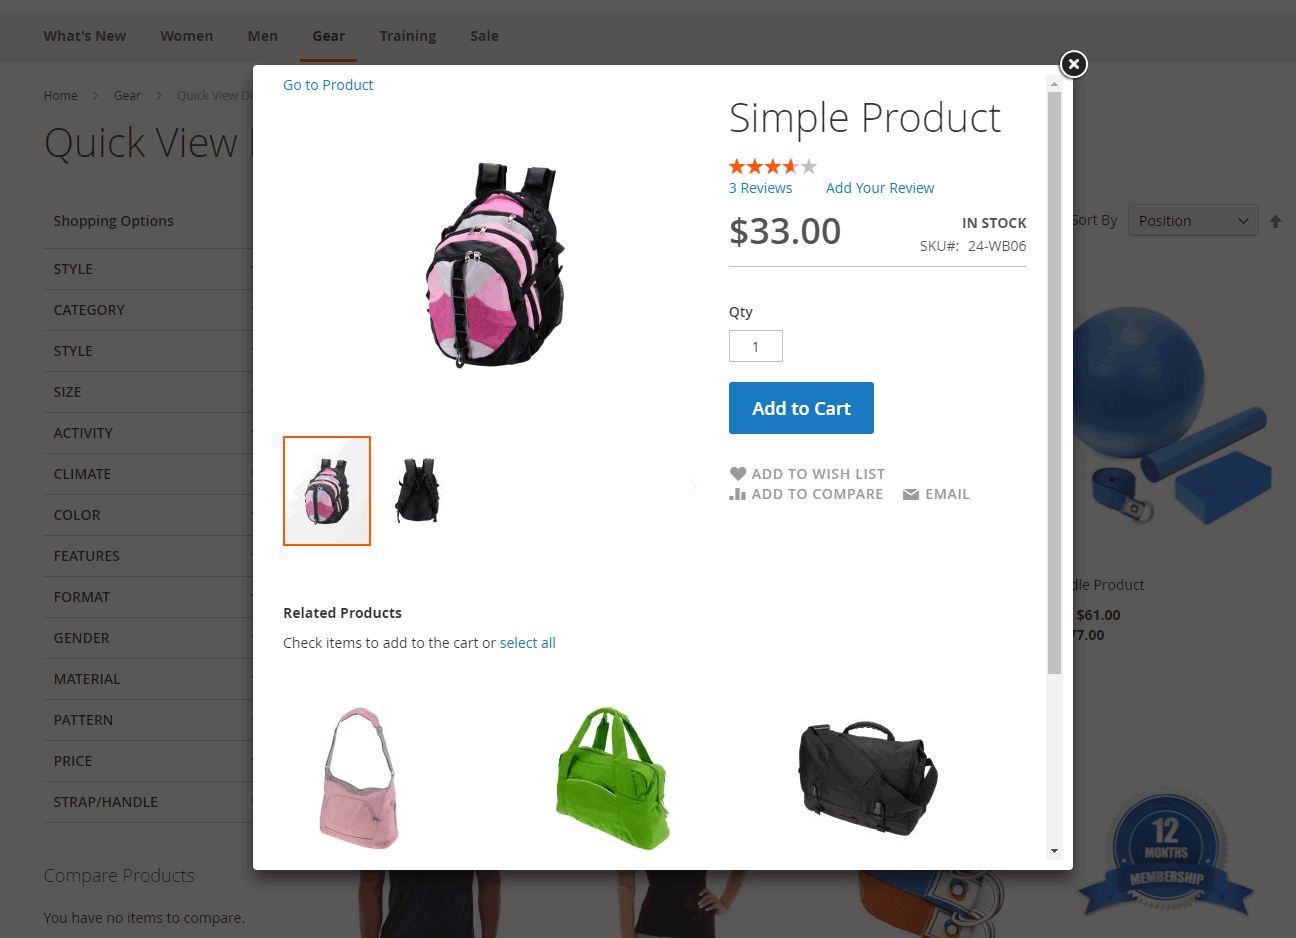 Quick View pop-up for simple product in Magento 2